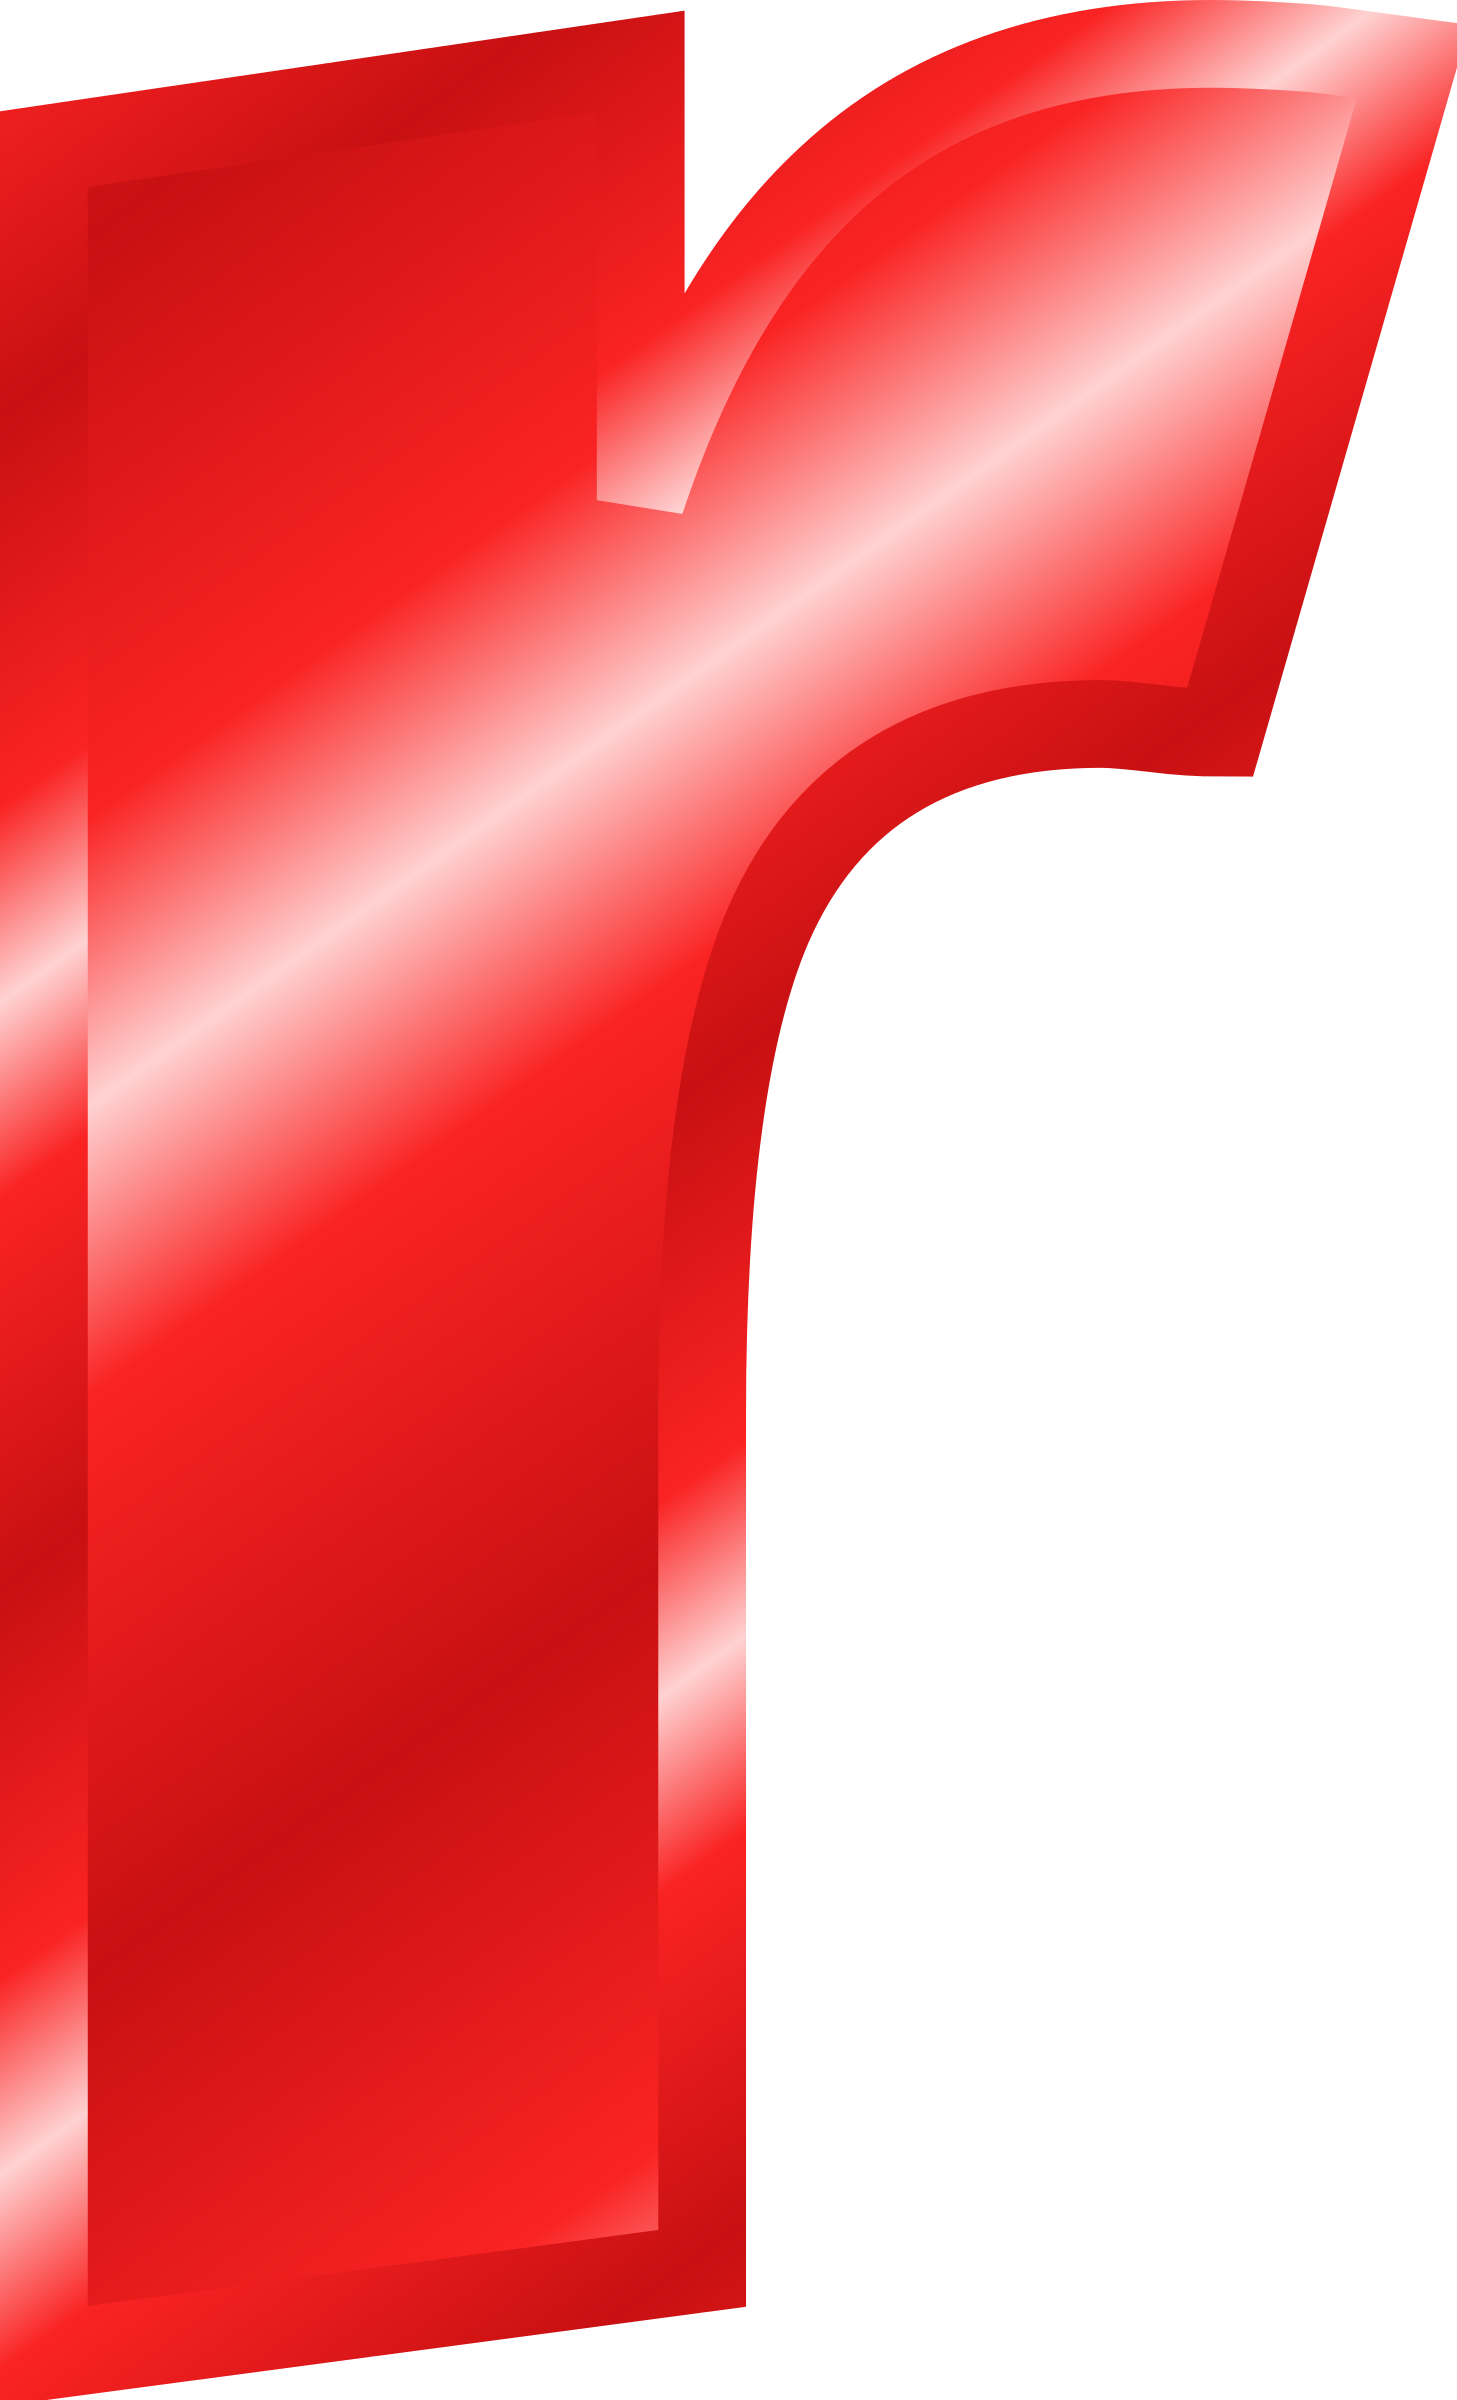 R clipart letter. Effect letters alphabet red